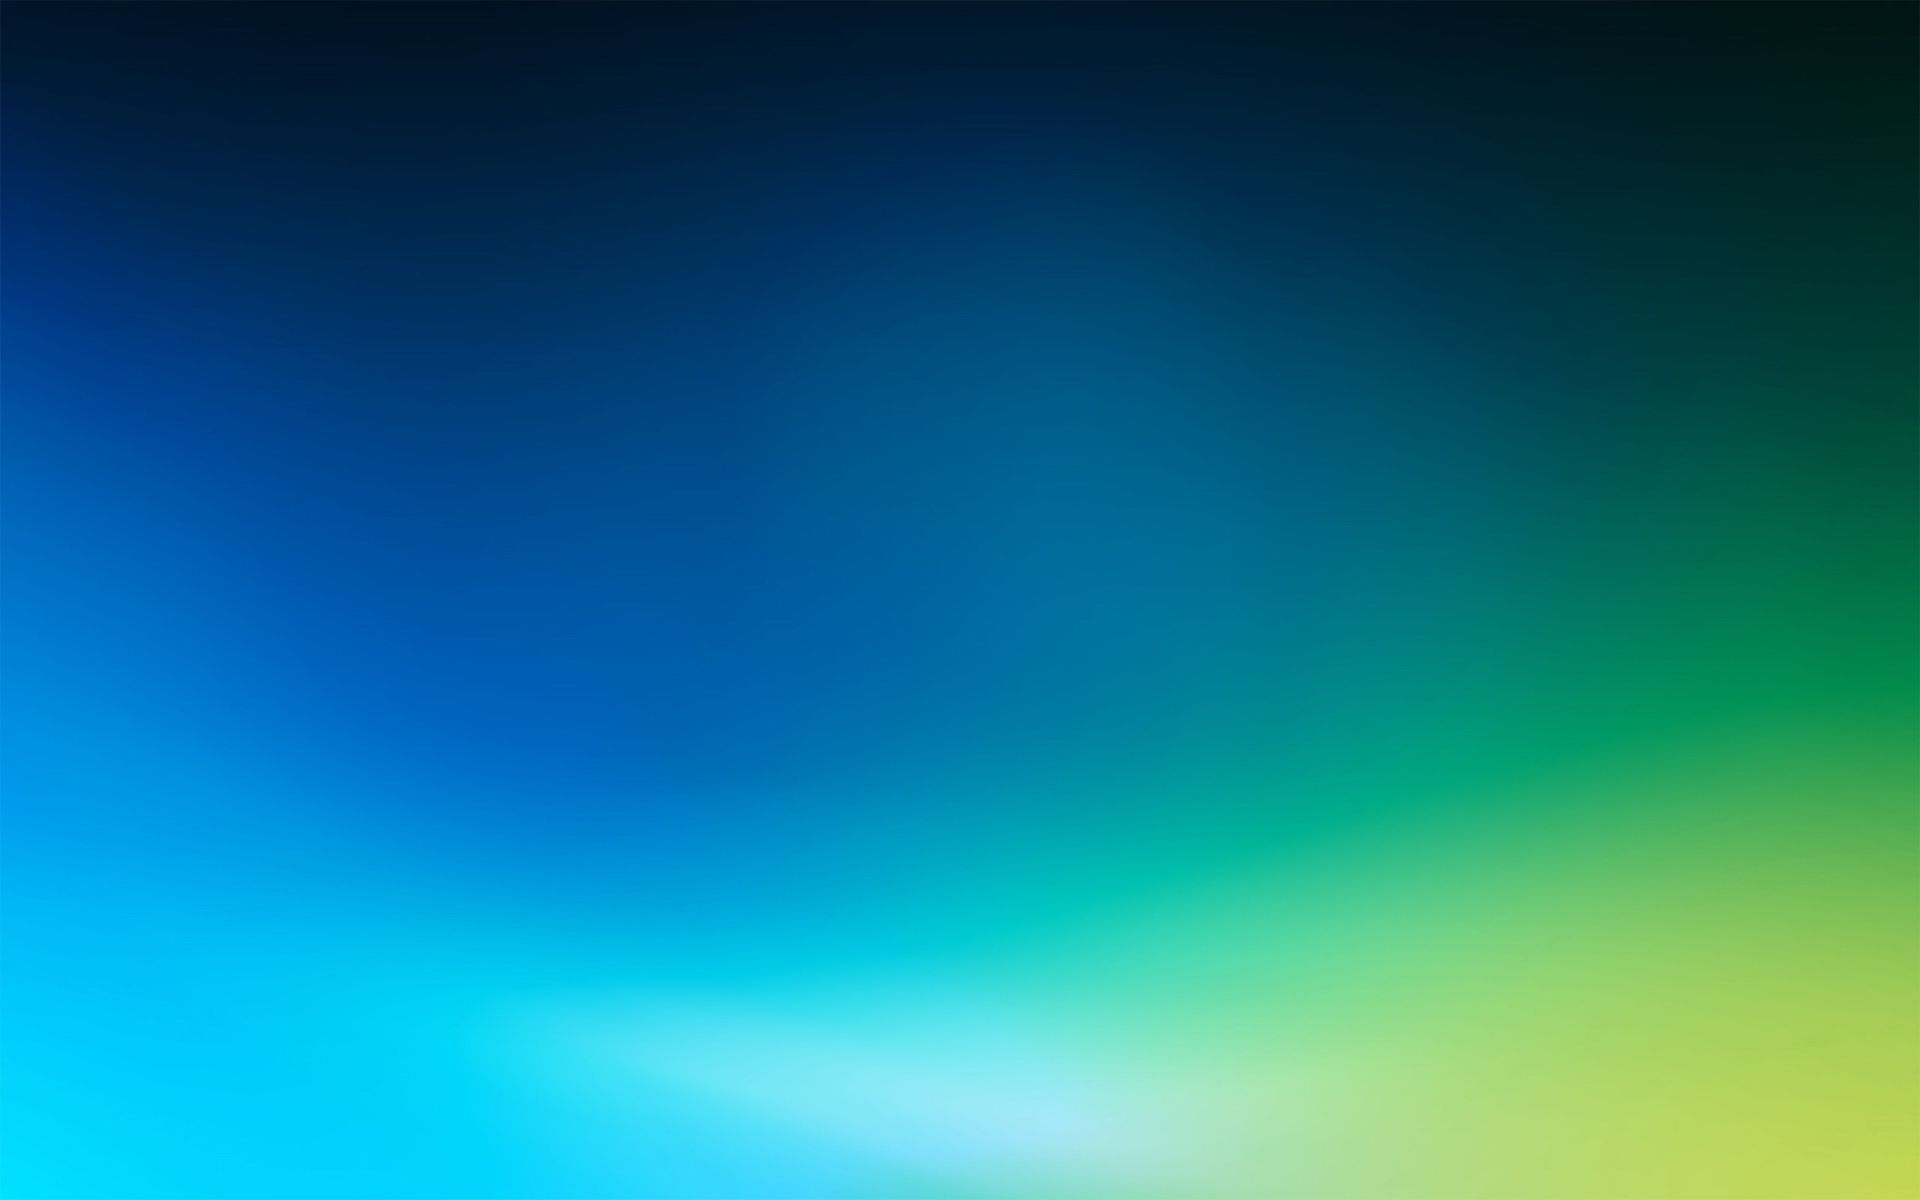 HD Gradient Backgrounds Ipad hintergrundbild, Wallpapers